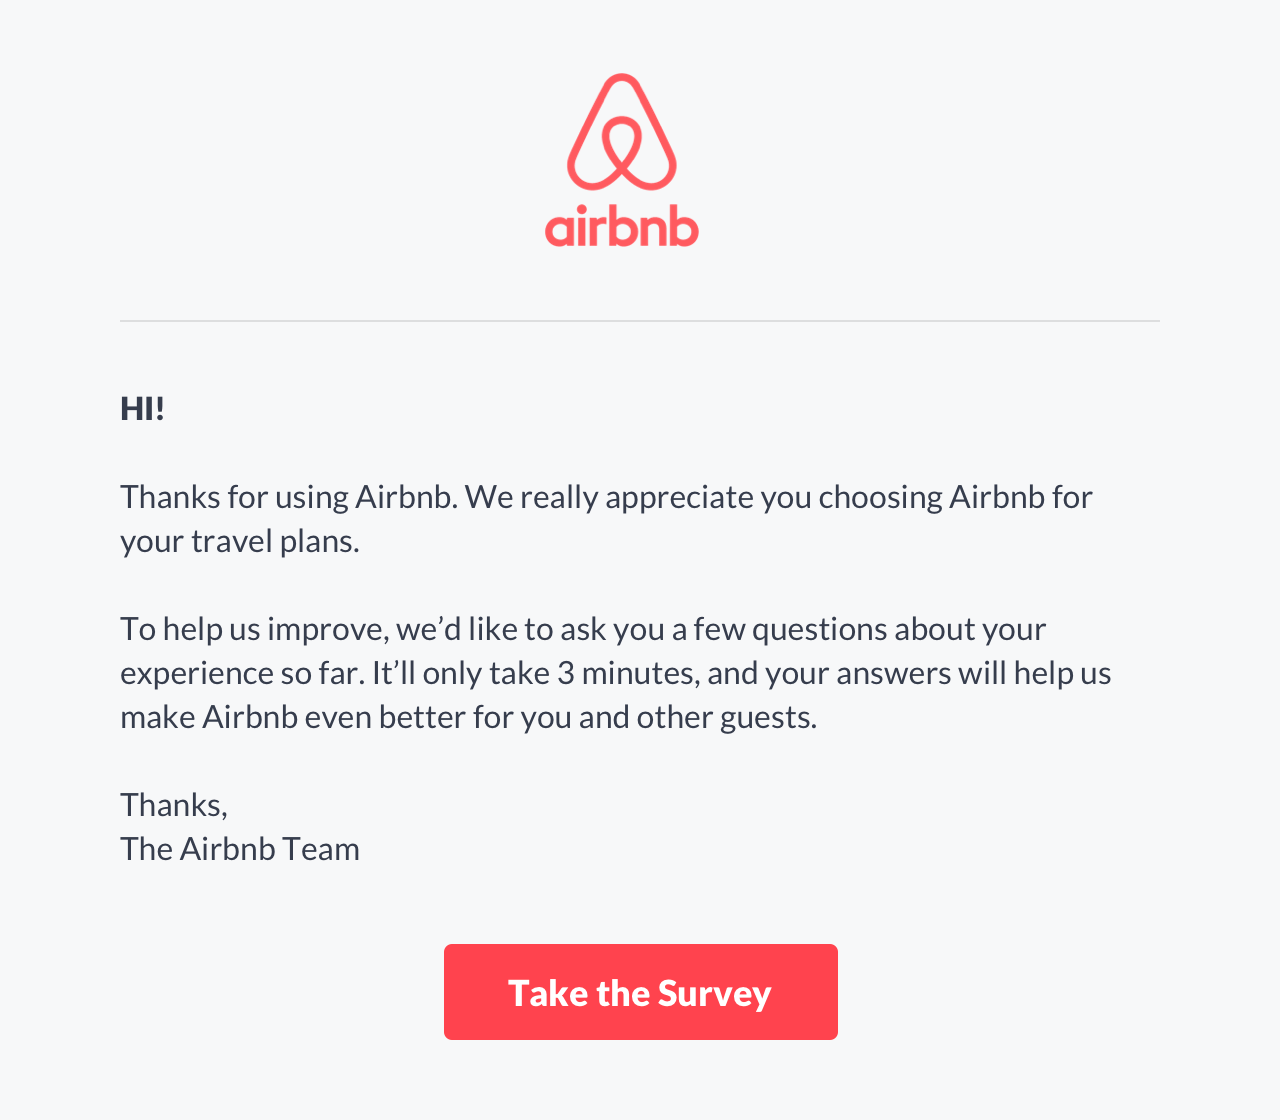 Airbnb gets people to take their survey by sending a proper email invitation and setting clear expectations